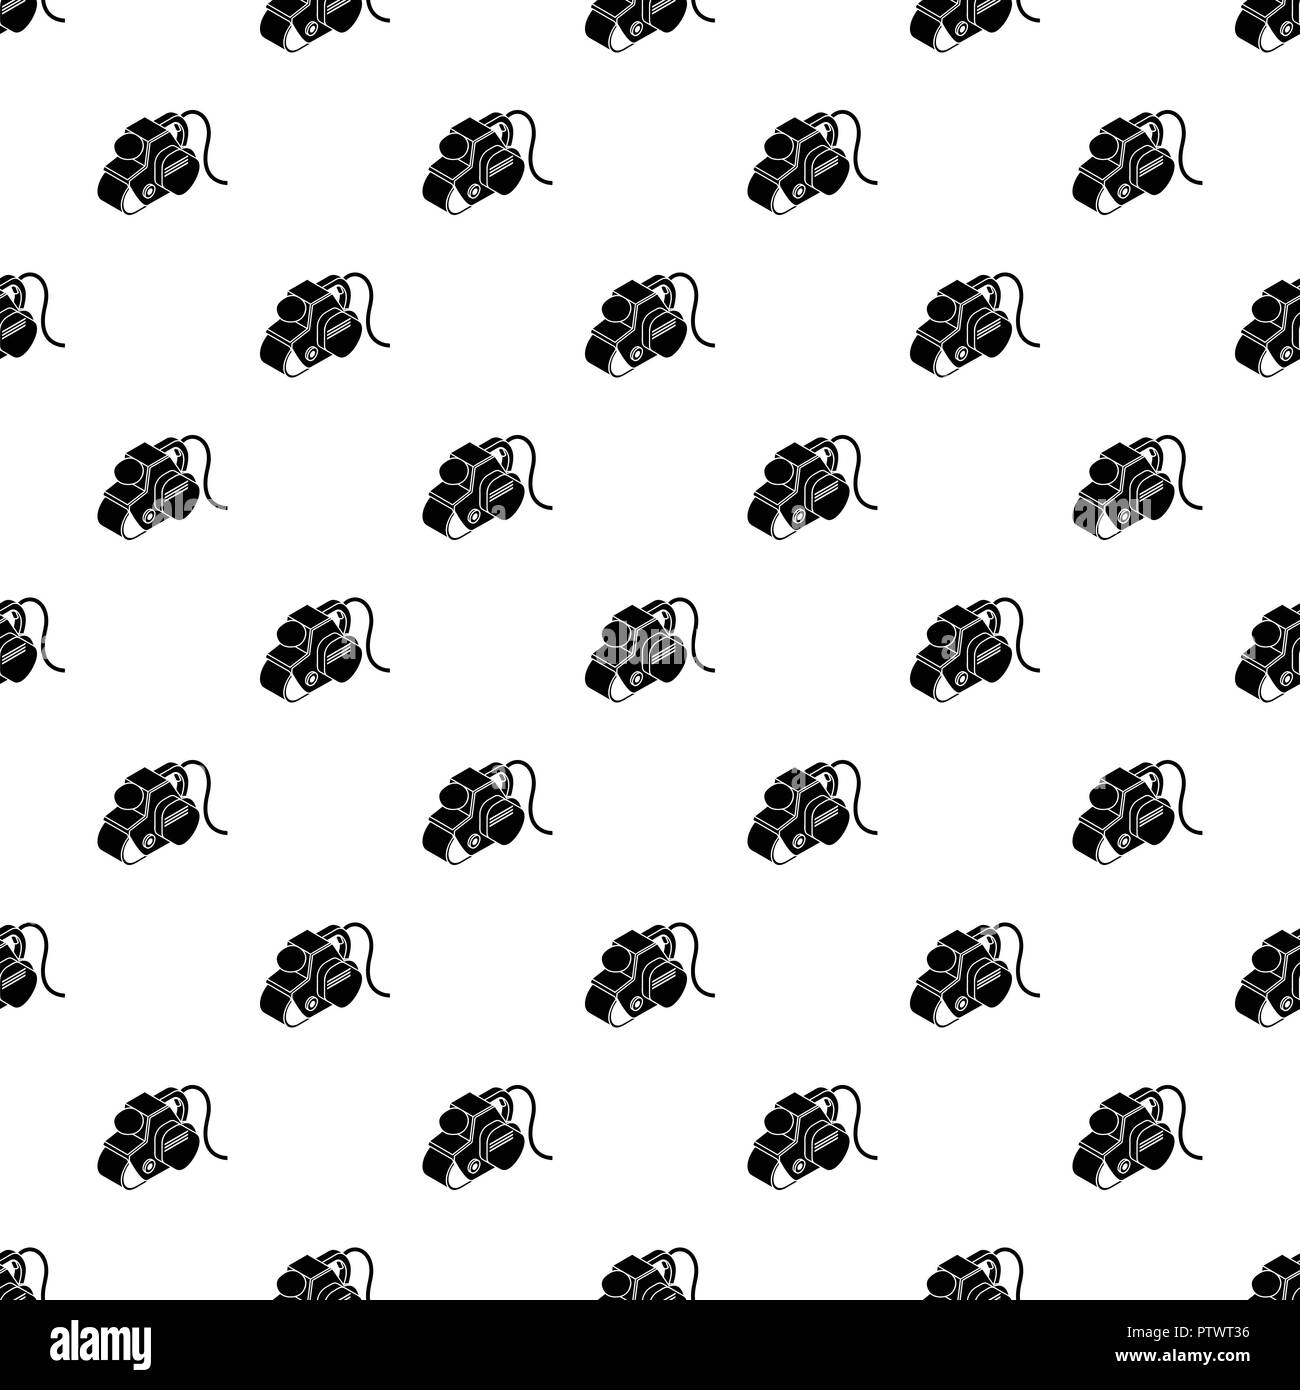 Power tool pattern vector seamless - Stock Image